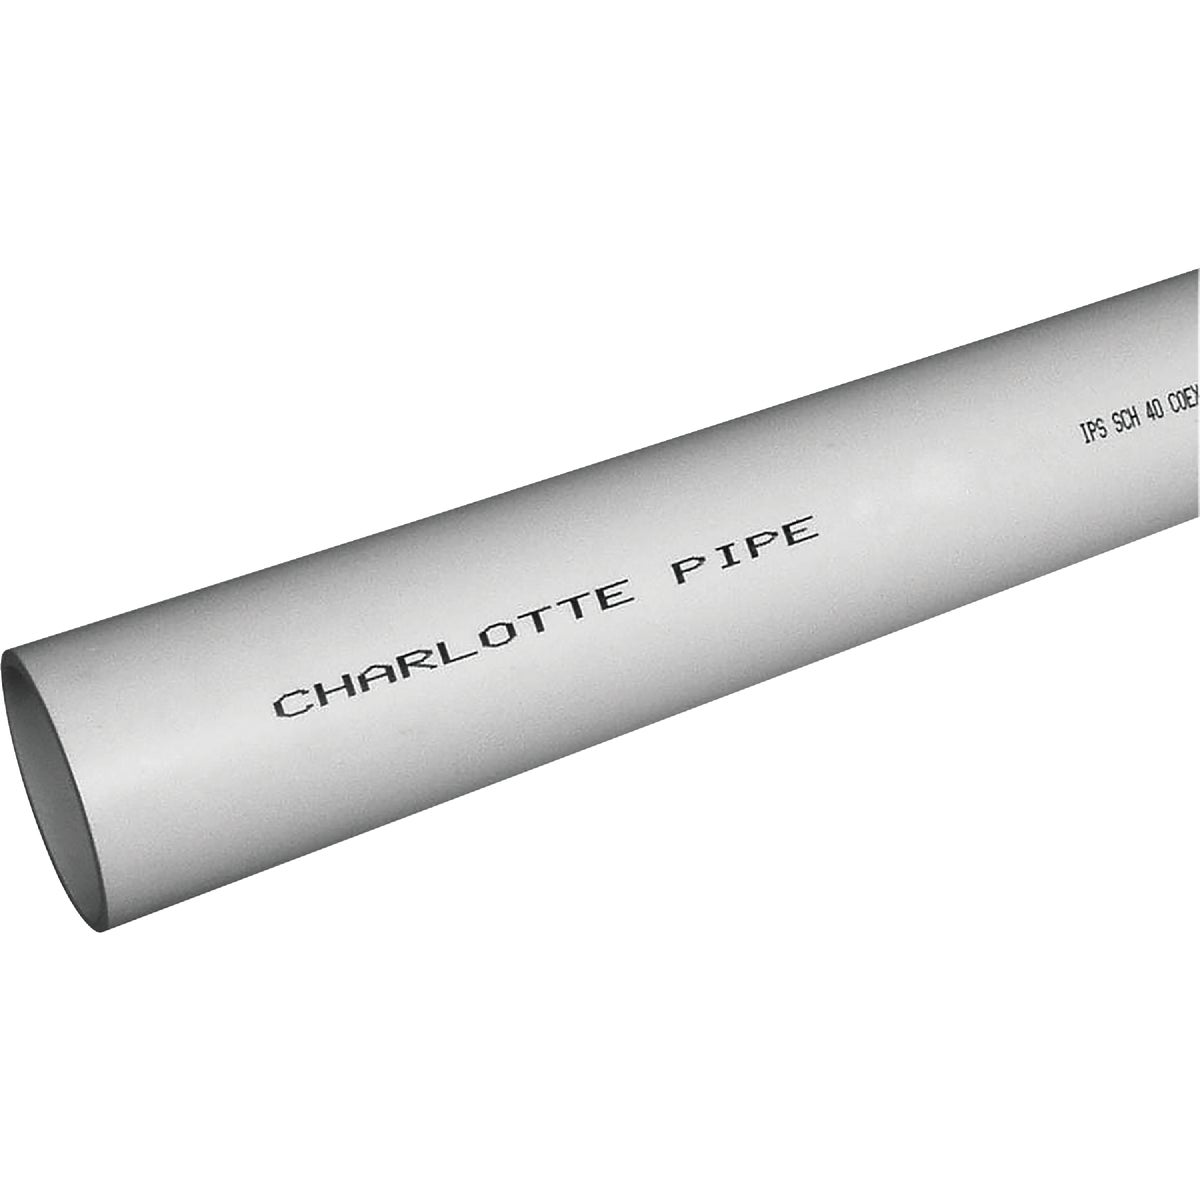 "2""X20' DWV CC PVC PIPE - 70022F by Genova Inc"